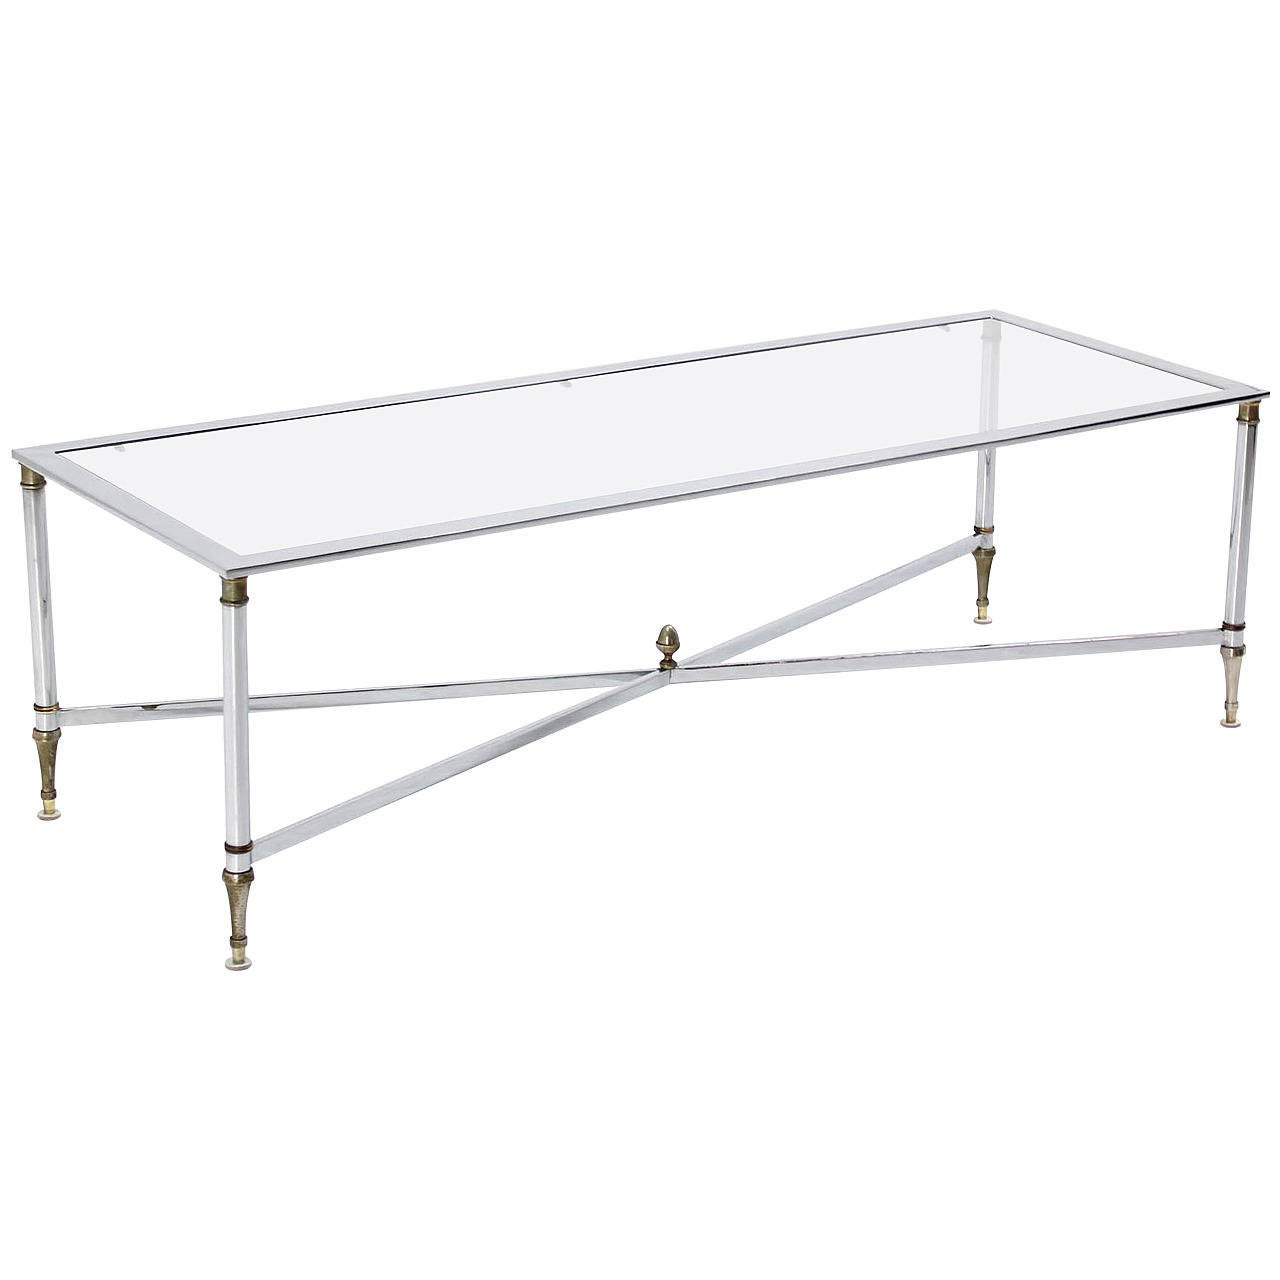 Chrome Brass X Base Glass Top Long Rectangle Coffee Table For Sale At 1stdibs